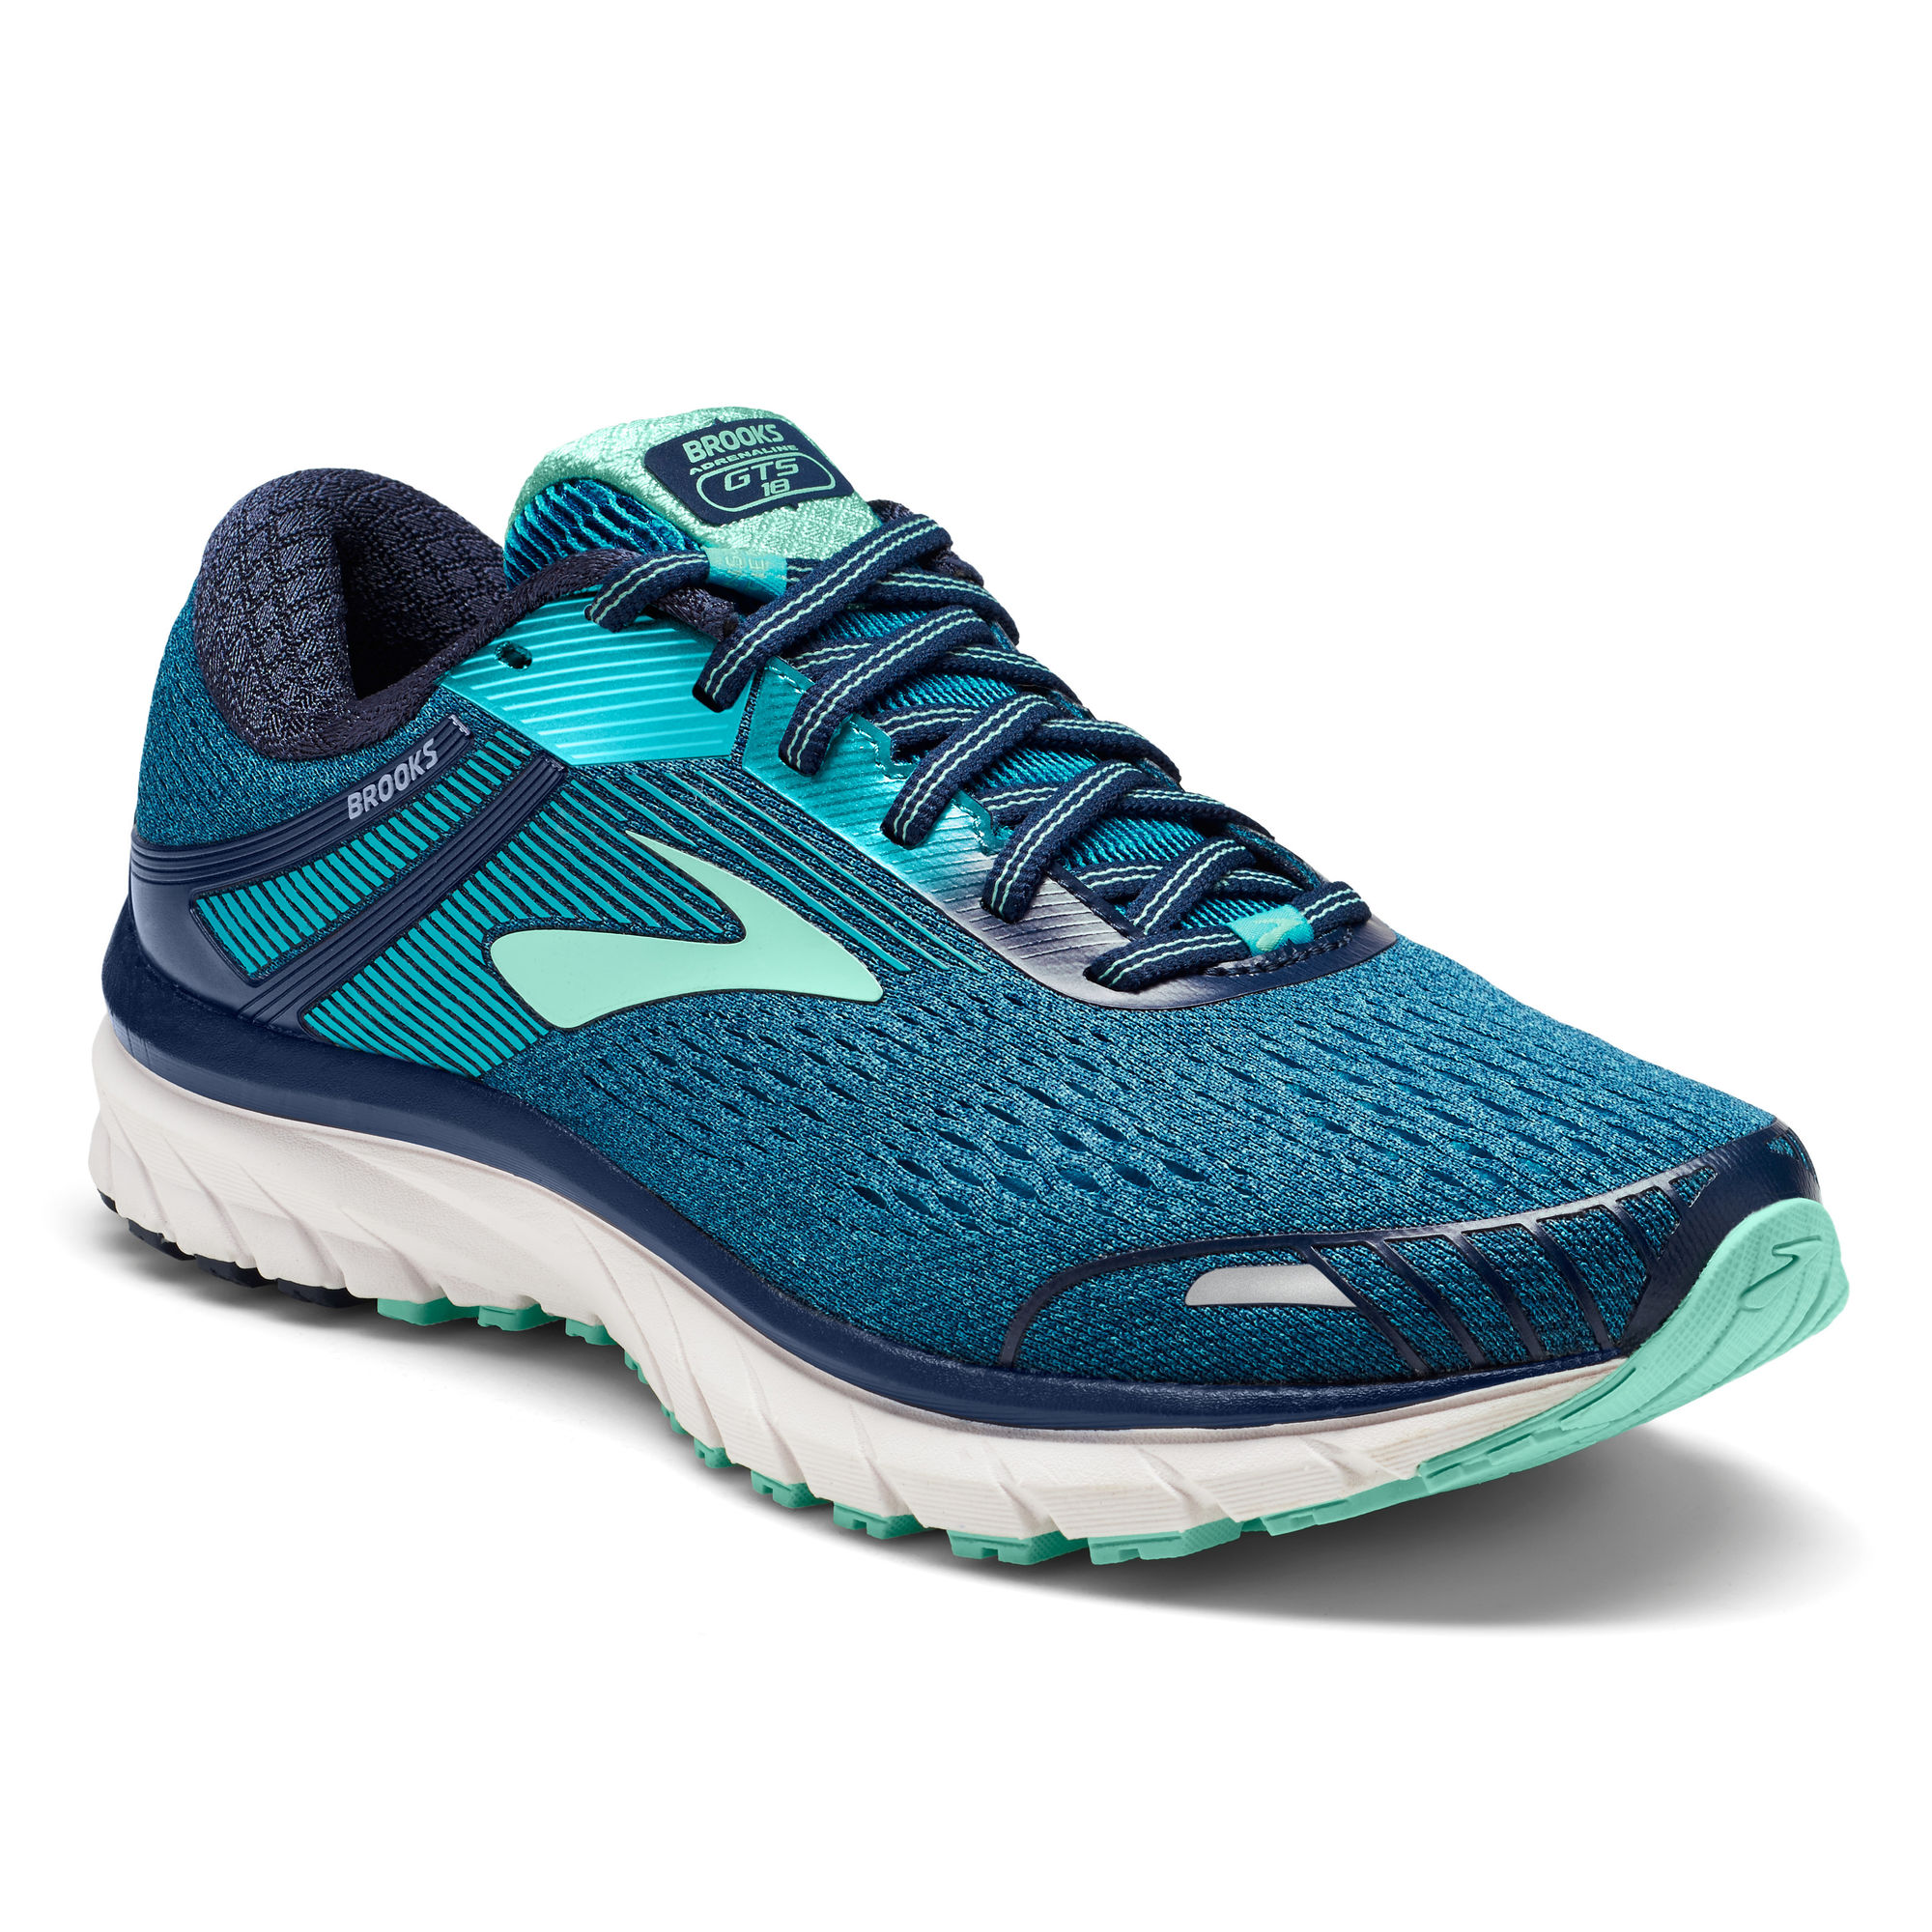 Brooks Lady Adrenaline 18 B in Navy Teal